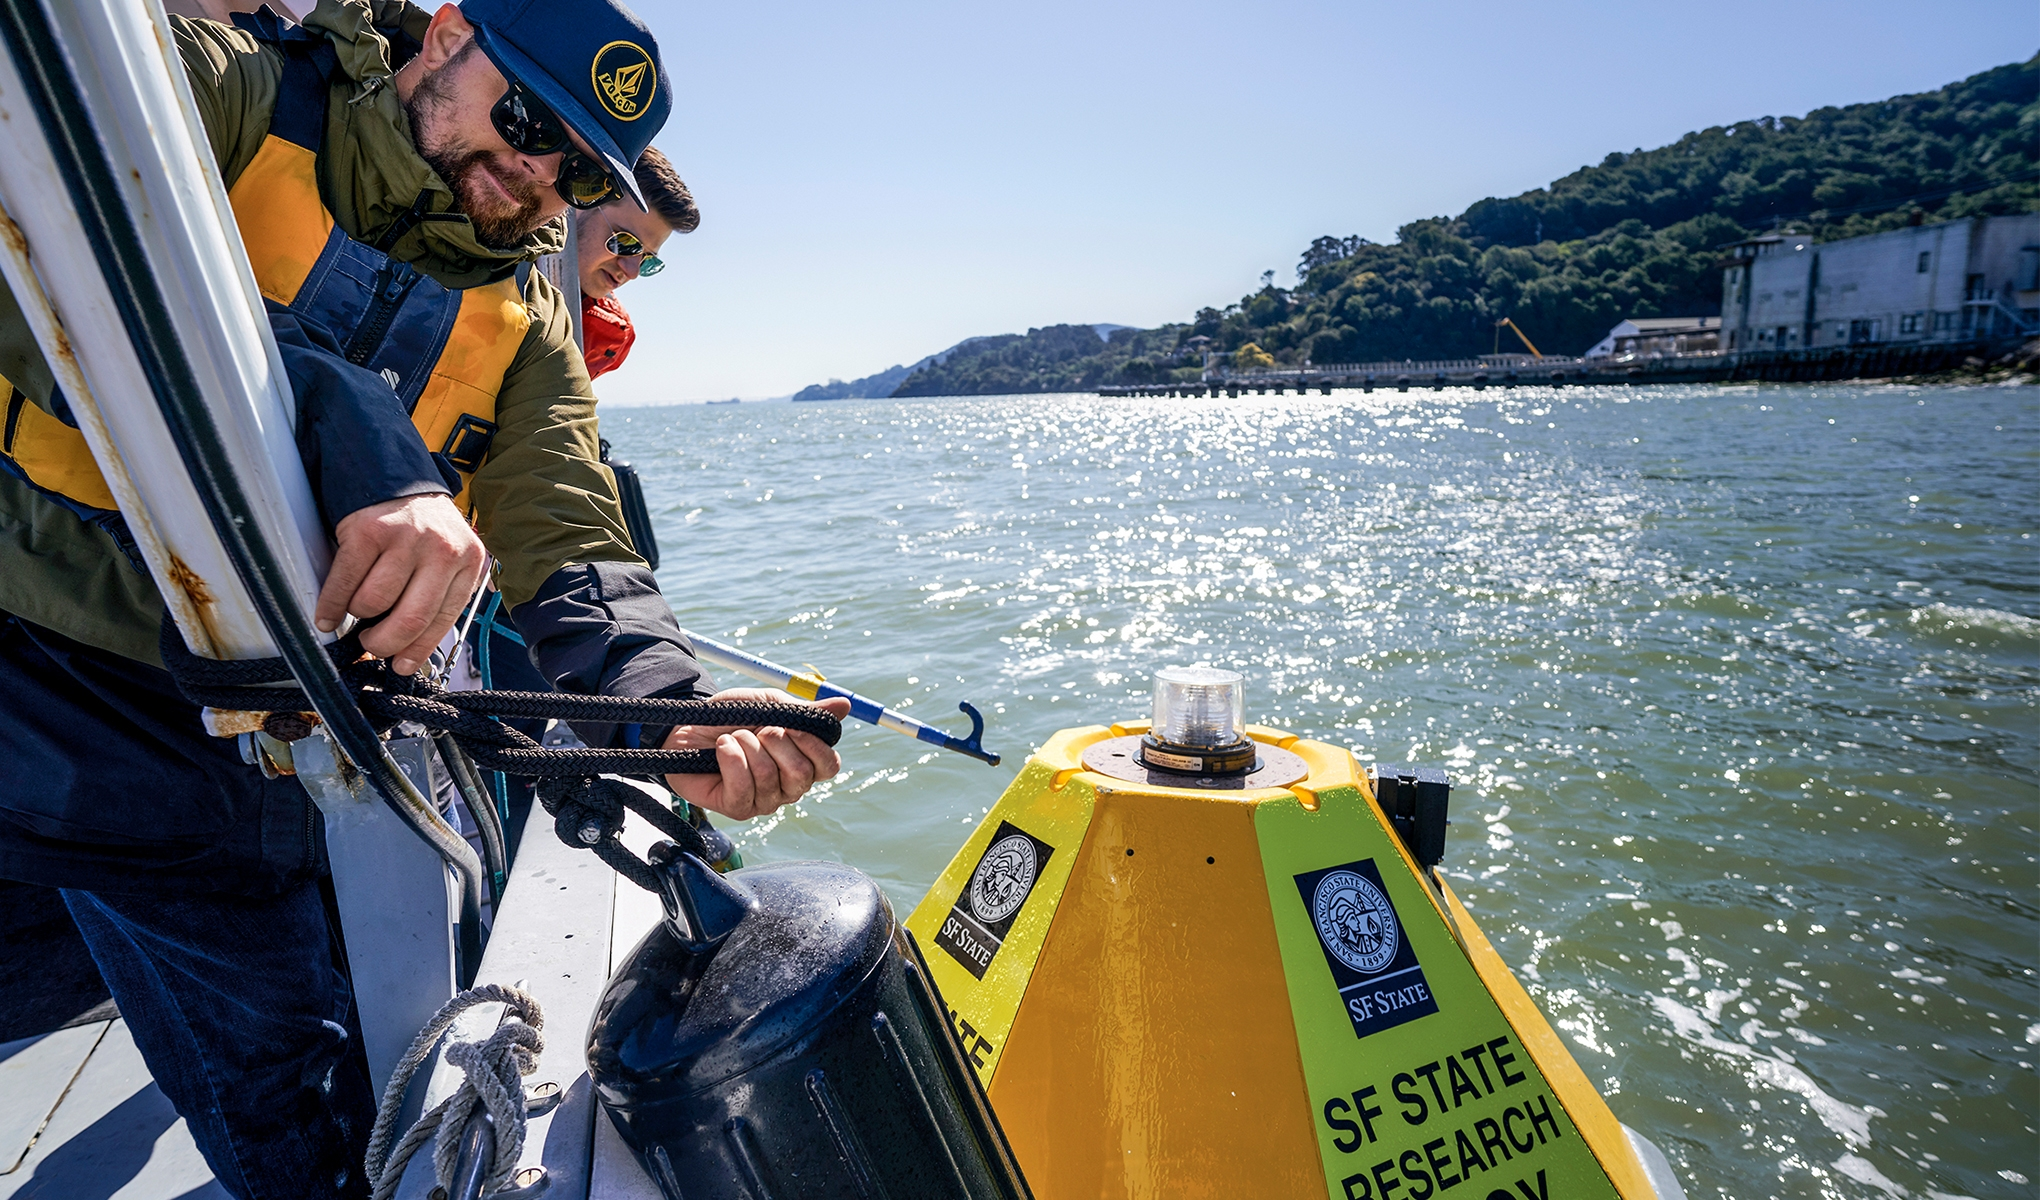 Researchers on a boat drop research buoy into bay area waters